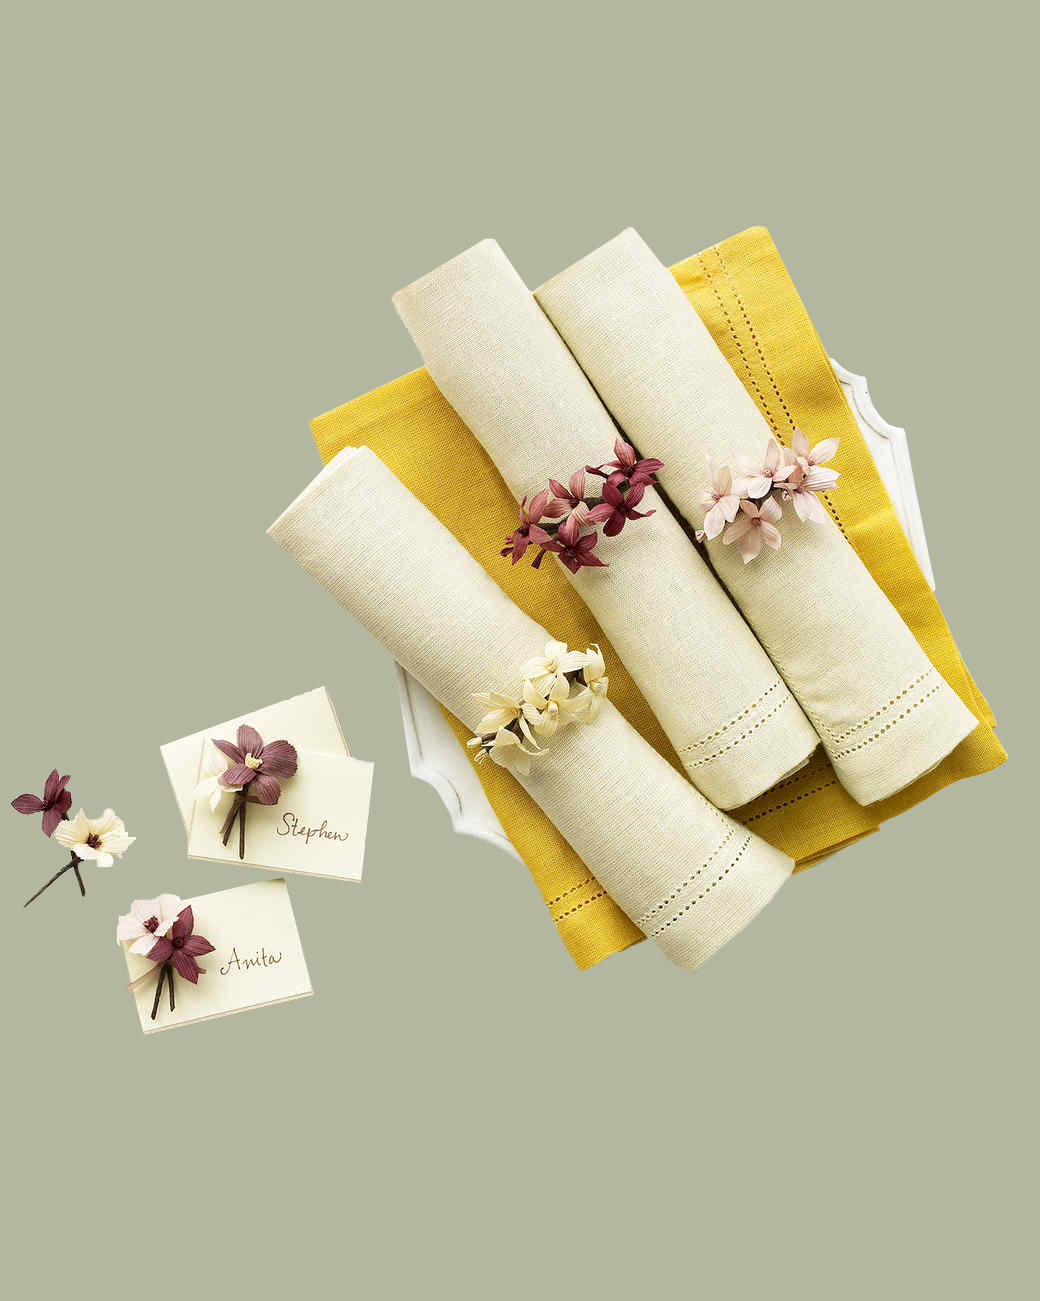 corn husk blooms place cards and napkin rings